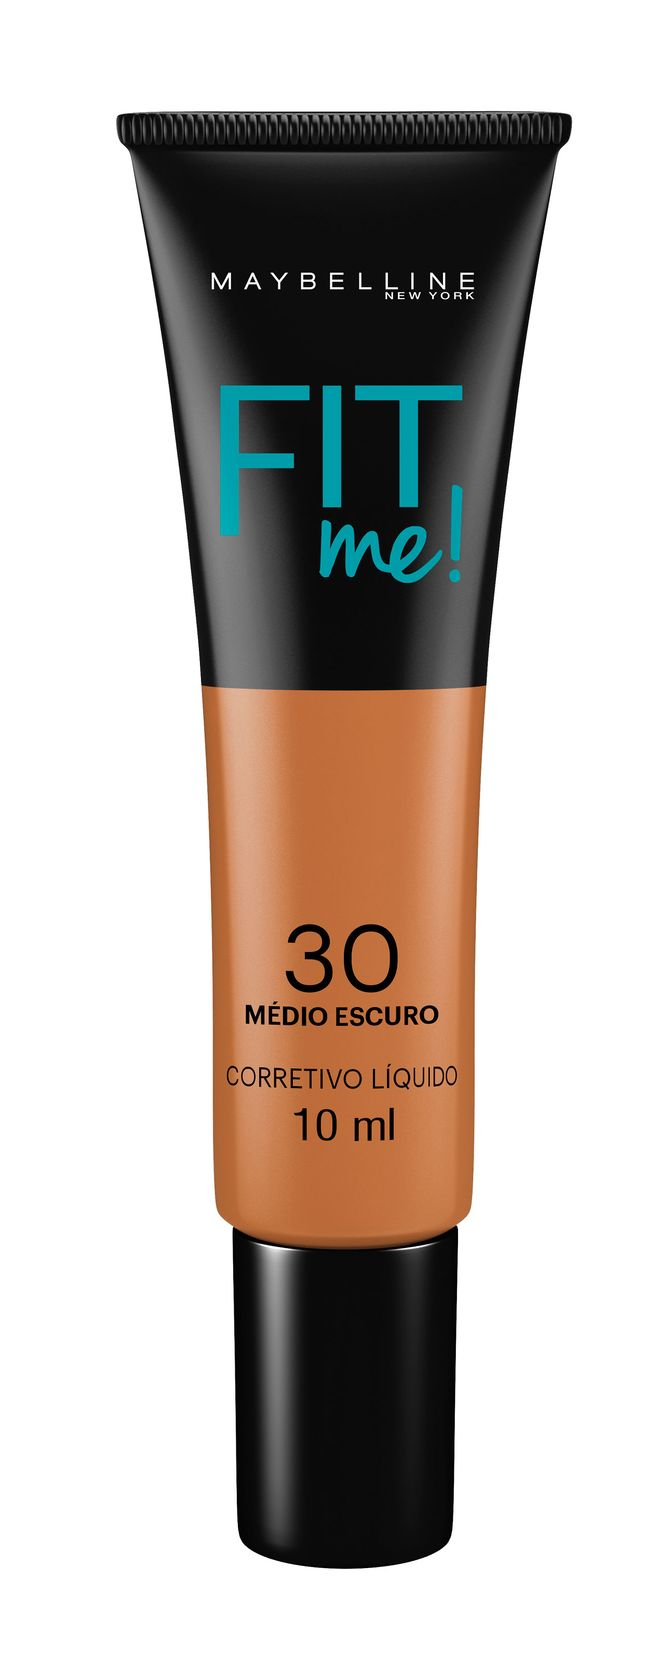 Corretivo FIT Me, Maybelline, R$ 28